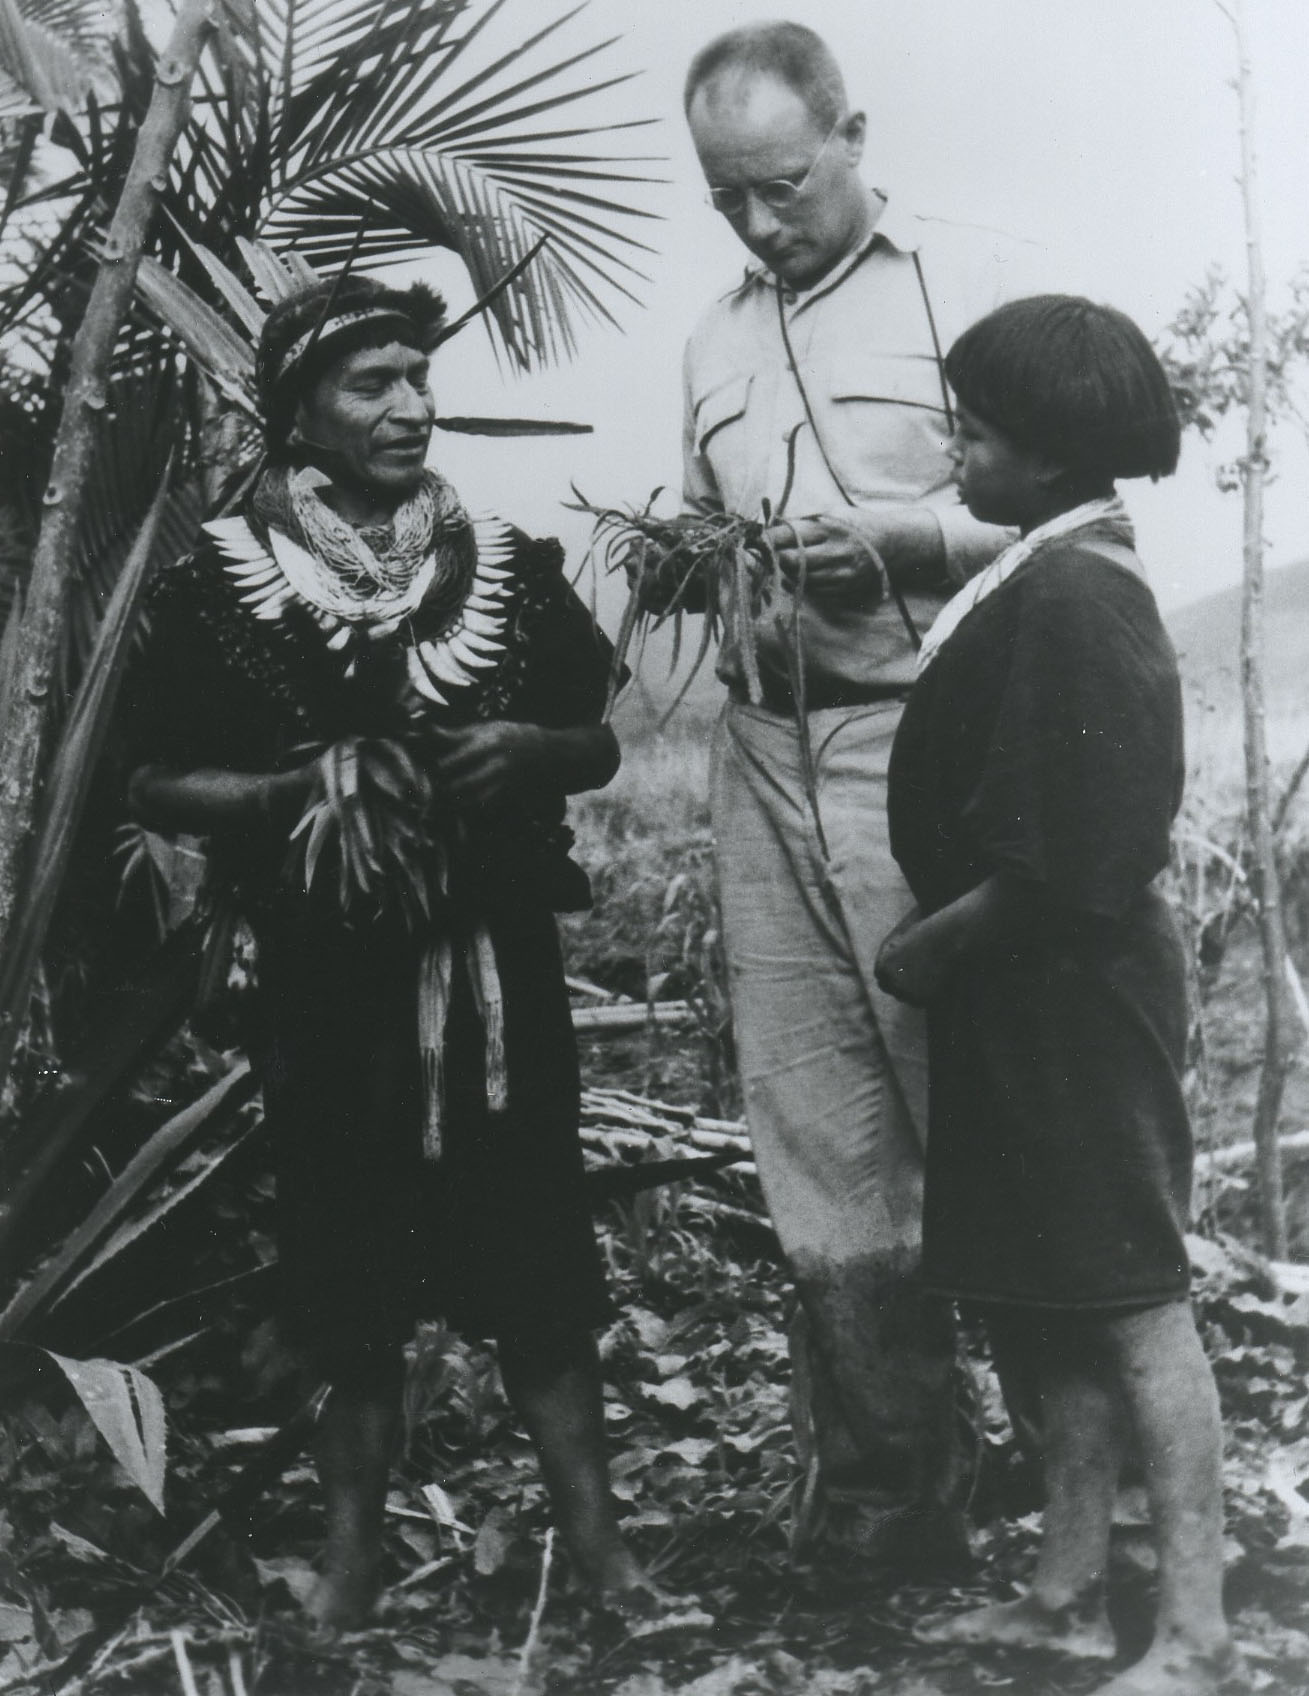 black and white photo of three people standing in a forest looking at plant specimens